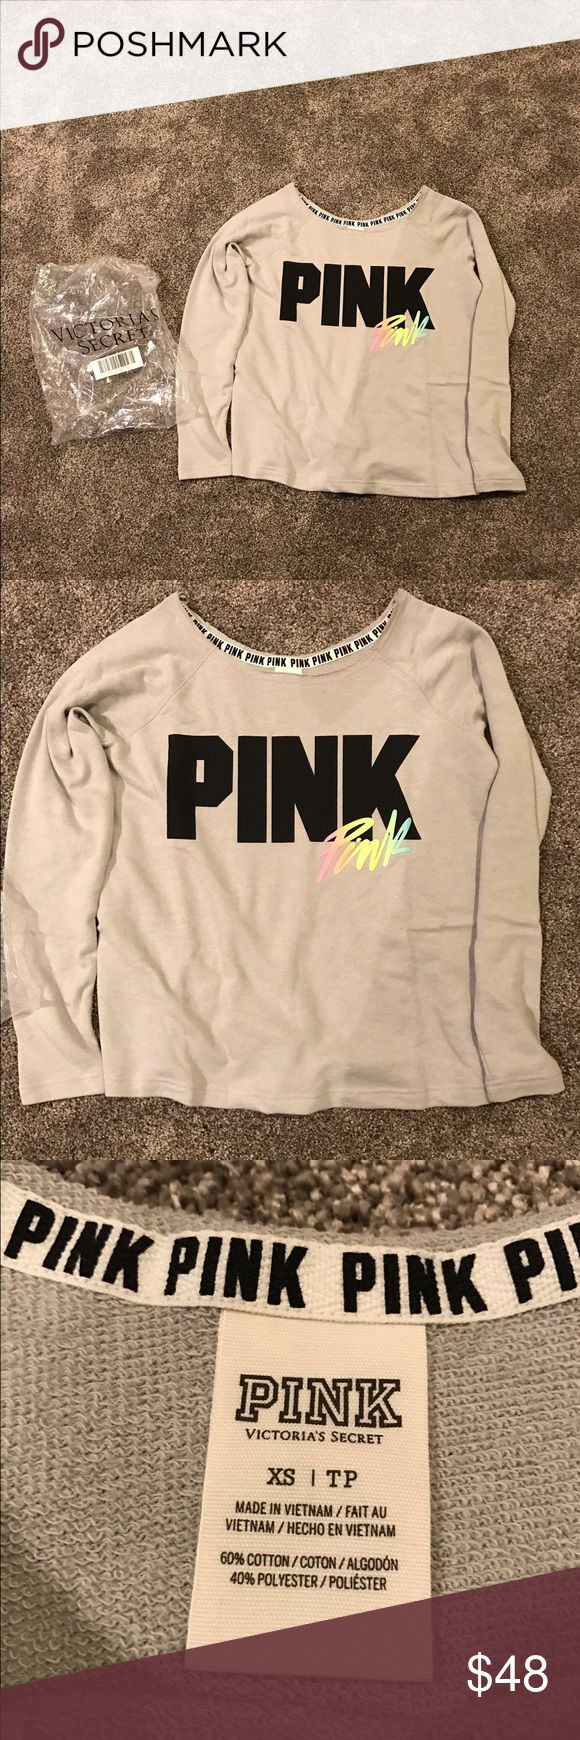 NIP Victoria's Secret Pink slouchy top Sz XS New in online package Victoria's Secret Pink slouchy crew top in a size XS! So cute! Also have a size small in the set that is listed! Smoke free home! Color is grey! PINK Victoria's Secret Tops Sweatshirts & Hoodies